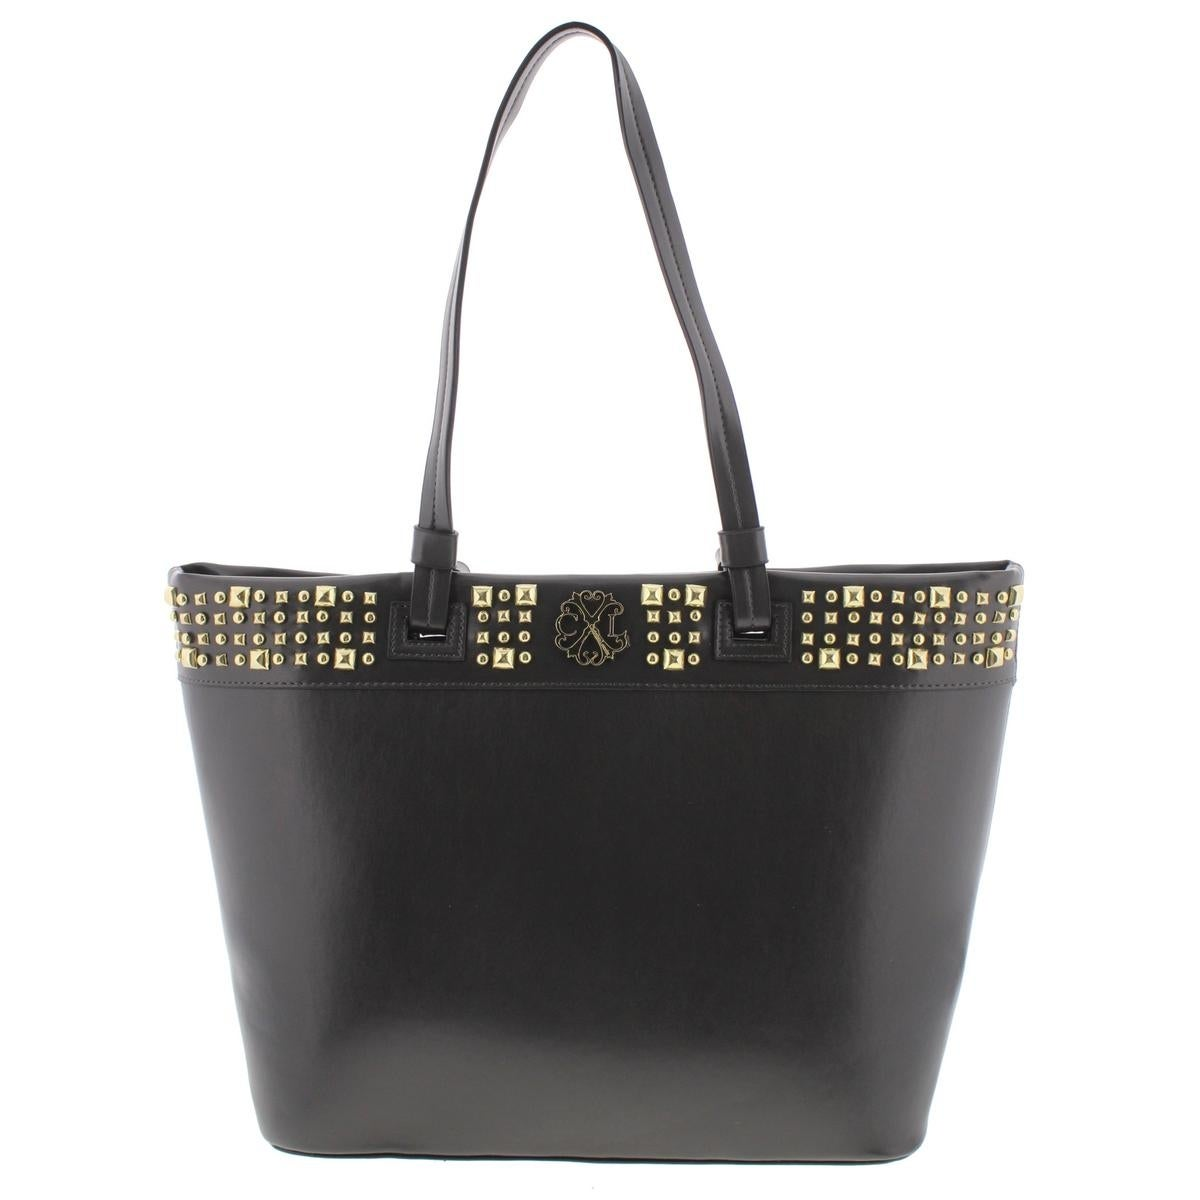 dff8396af485 CXL by Christian Lacroix Womens Nina Tote Handbag Faux Leather Sudded -  Large